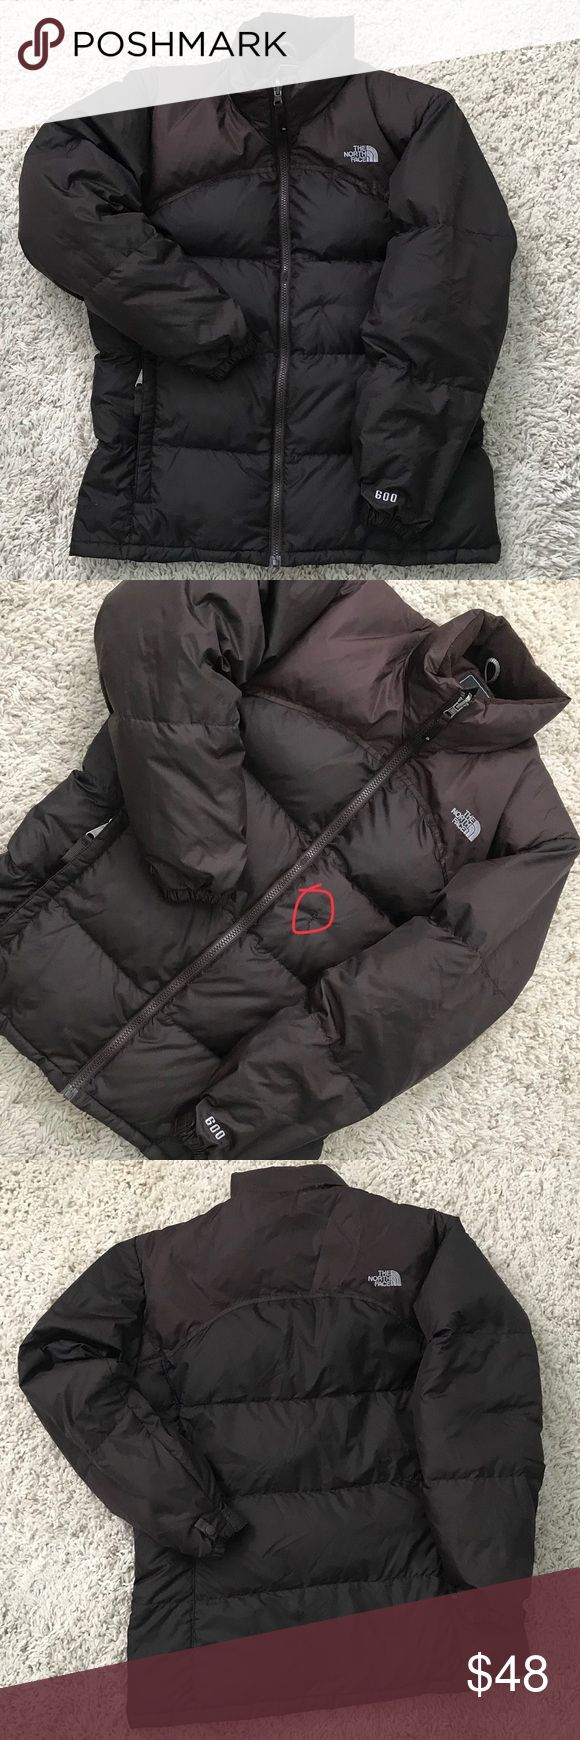 "The North Face 600 Puffer Jacket Coat Girls XL The North Face  600 Puffer Jacket Coat  Girls XL Two tone Brown  Overall good condition except a home on front that was mended 1/2""  Name written on inside and scribbled out The North Face Jackets & Coats Puffers"